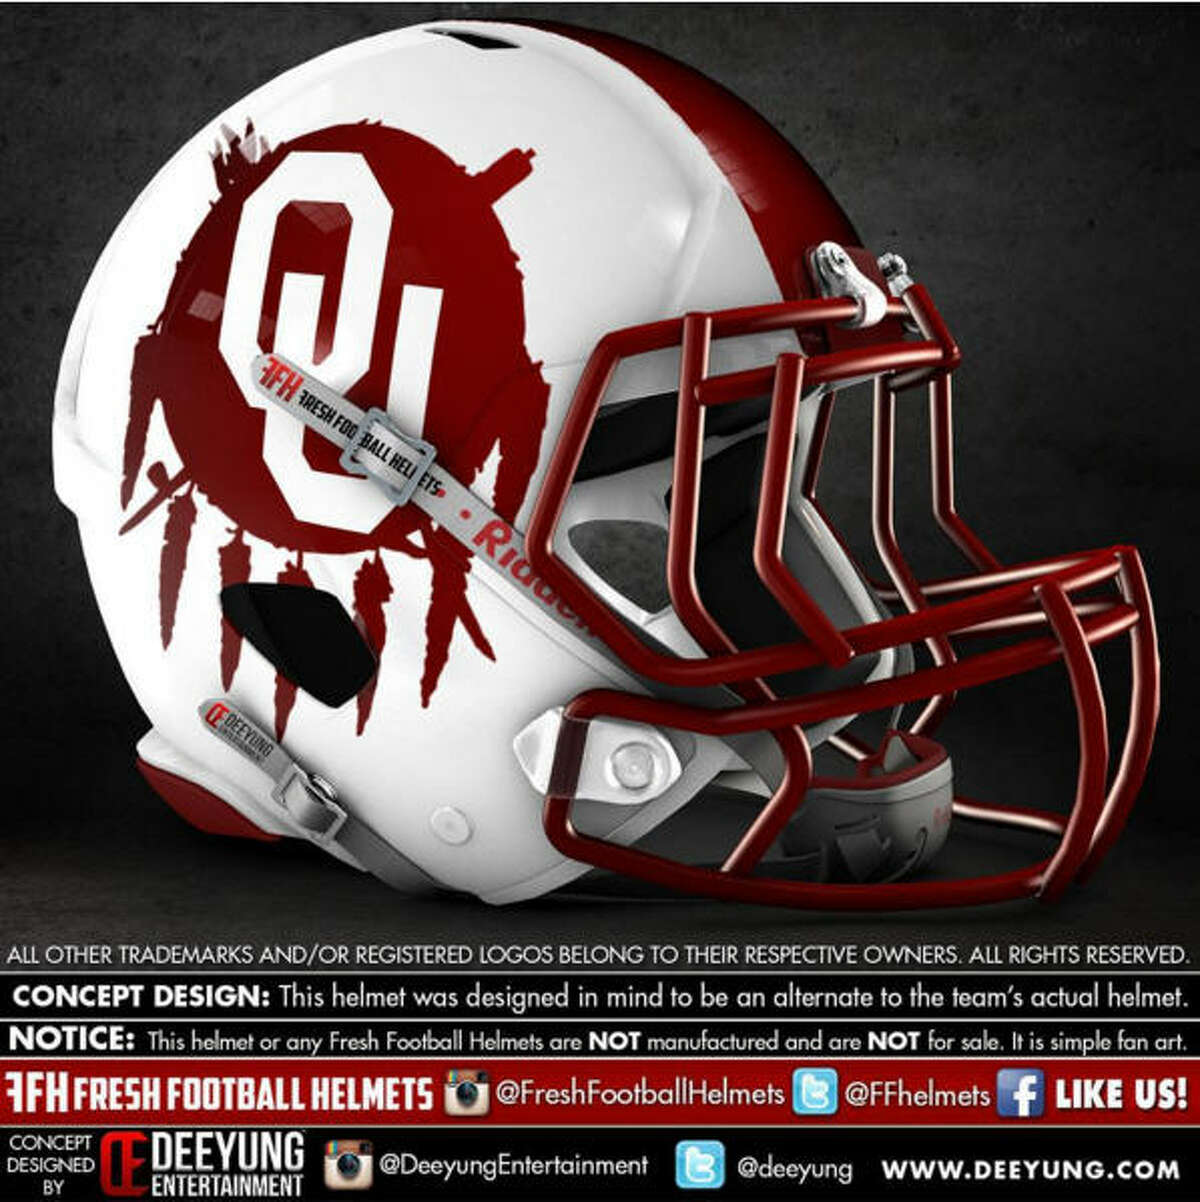 Oklahoma Sooners concept football helmet by Dylan Young of Deeyung Entertainment.